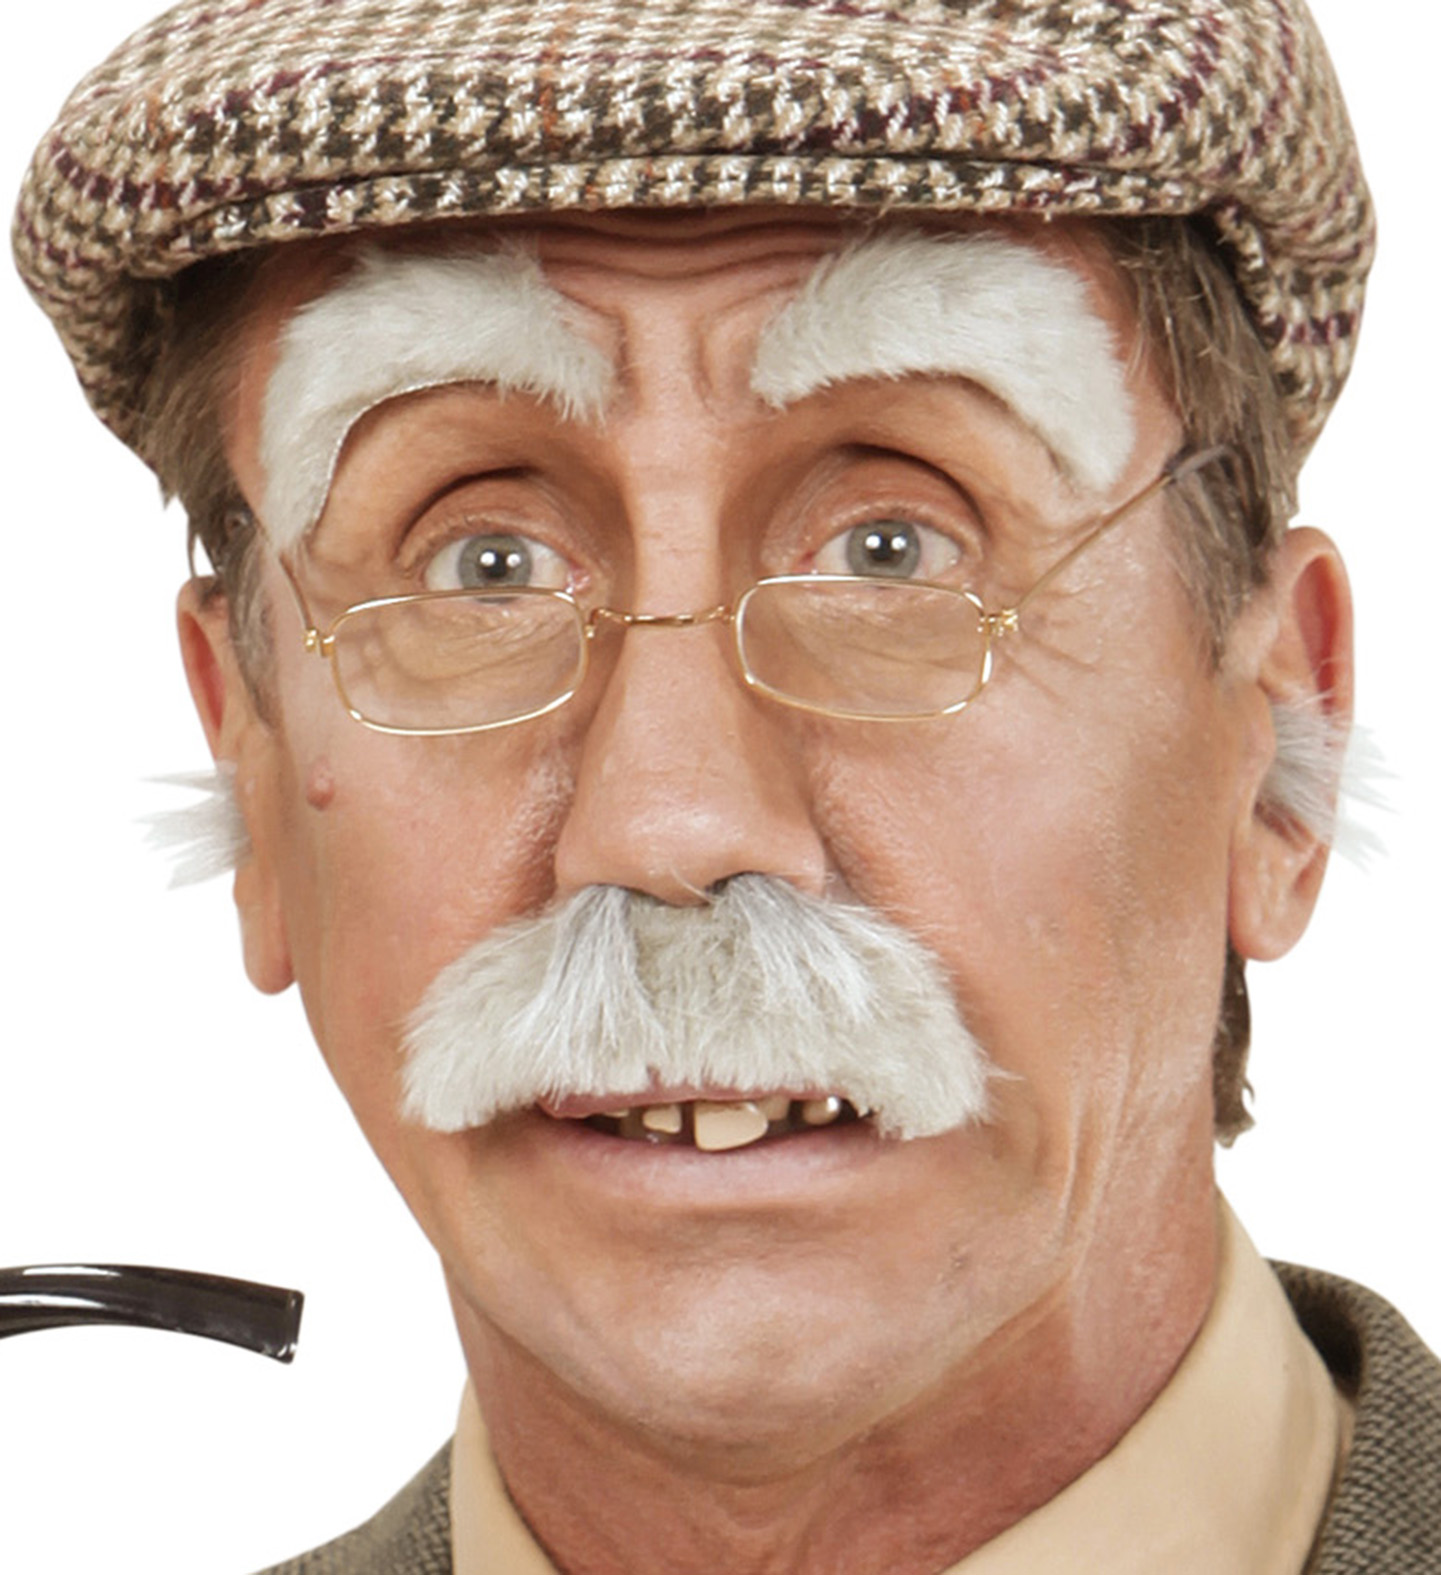 Fancy Dress OAP Old Man Granddad Glasses With Chain Mustache And Beard